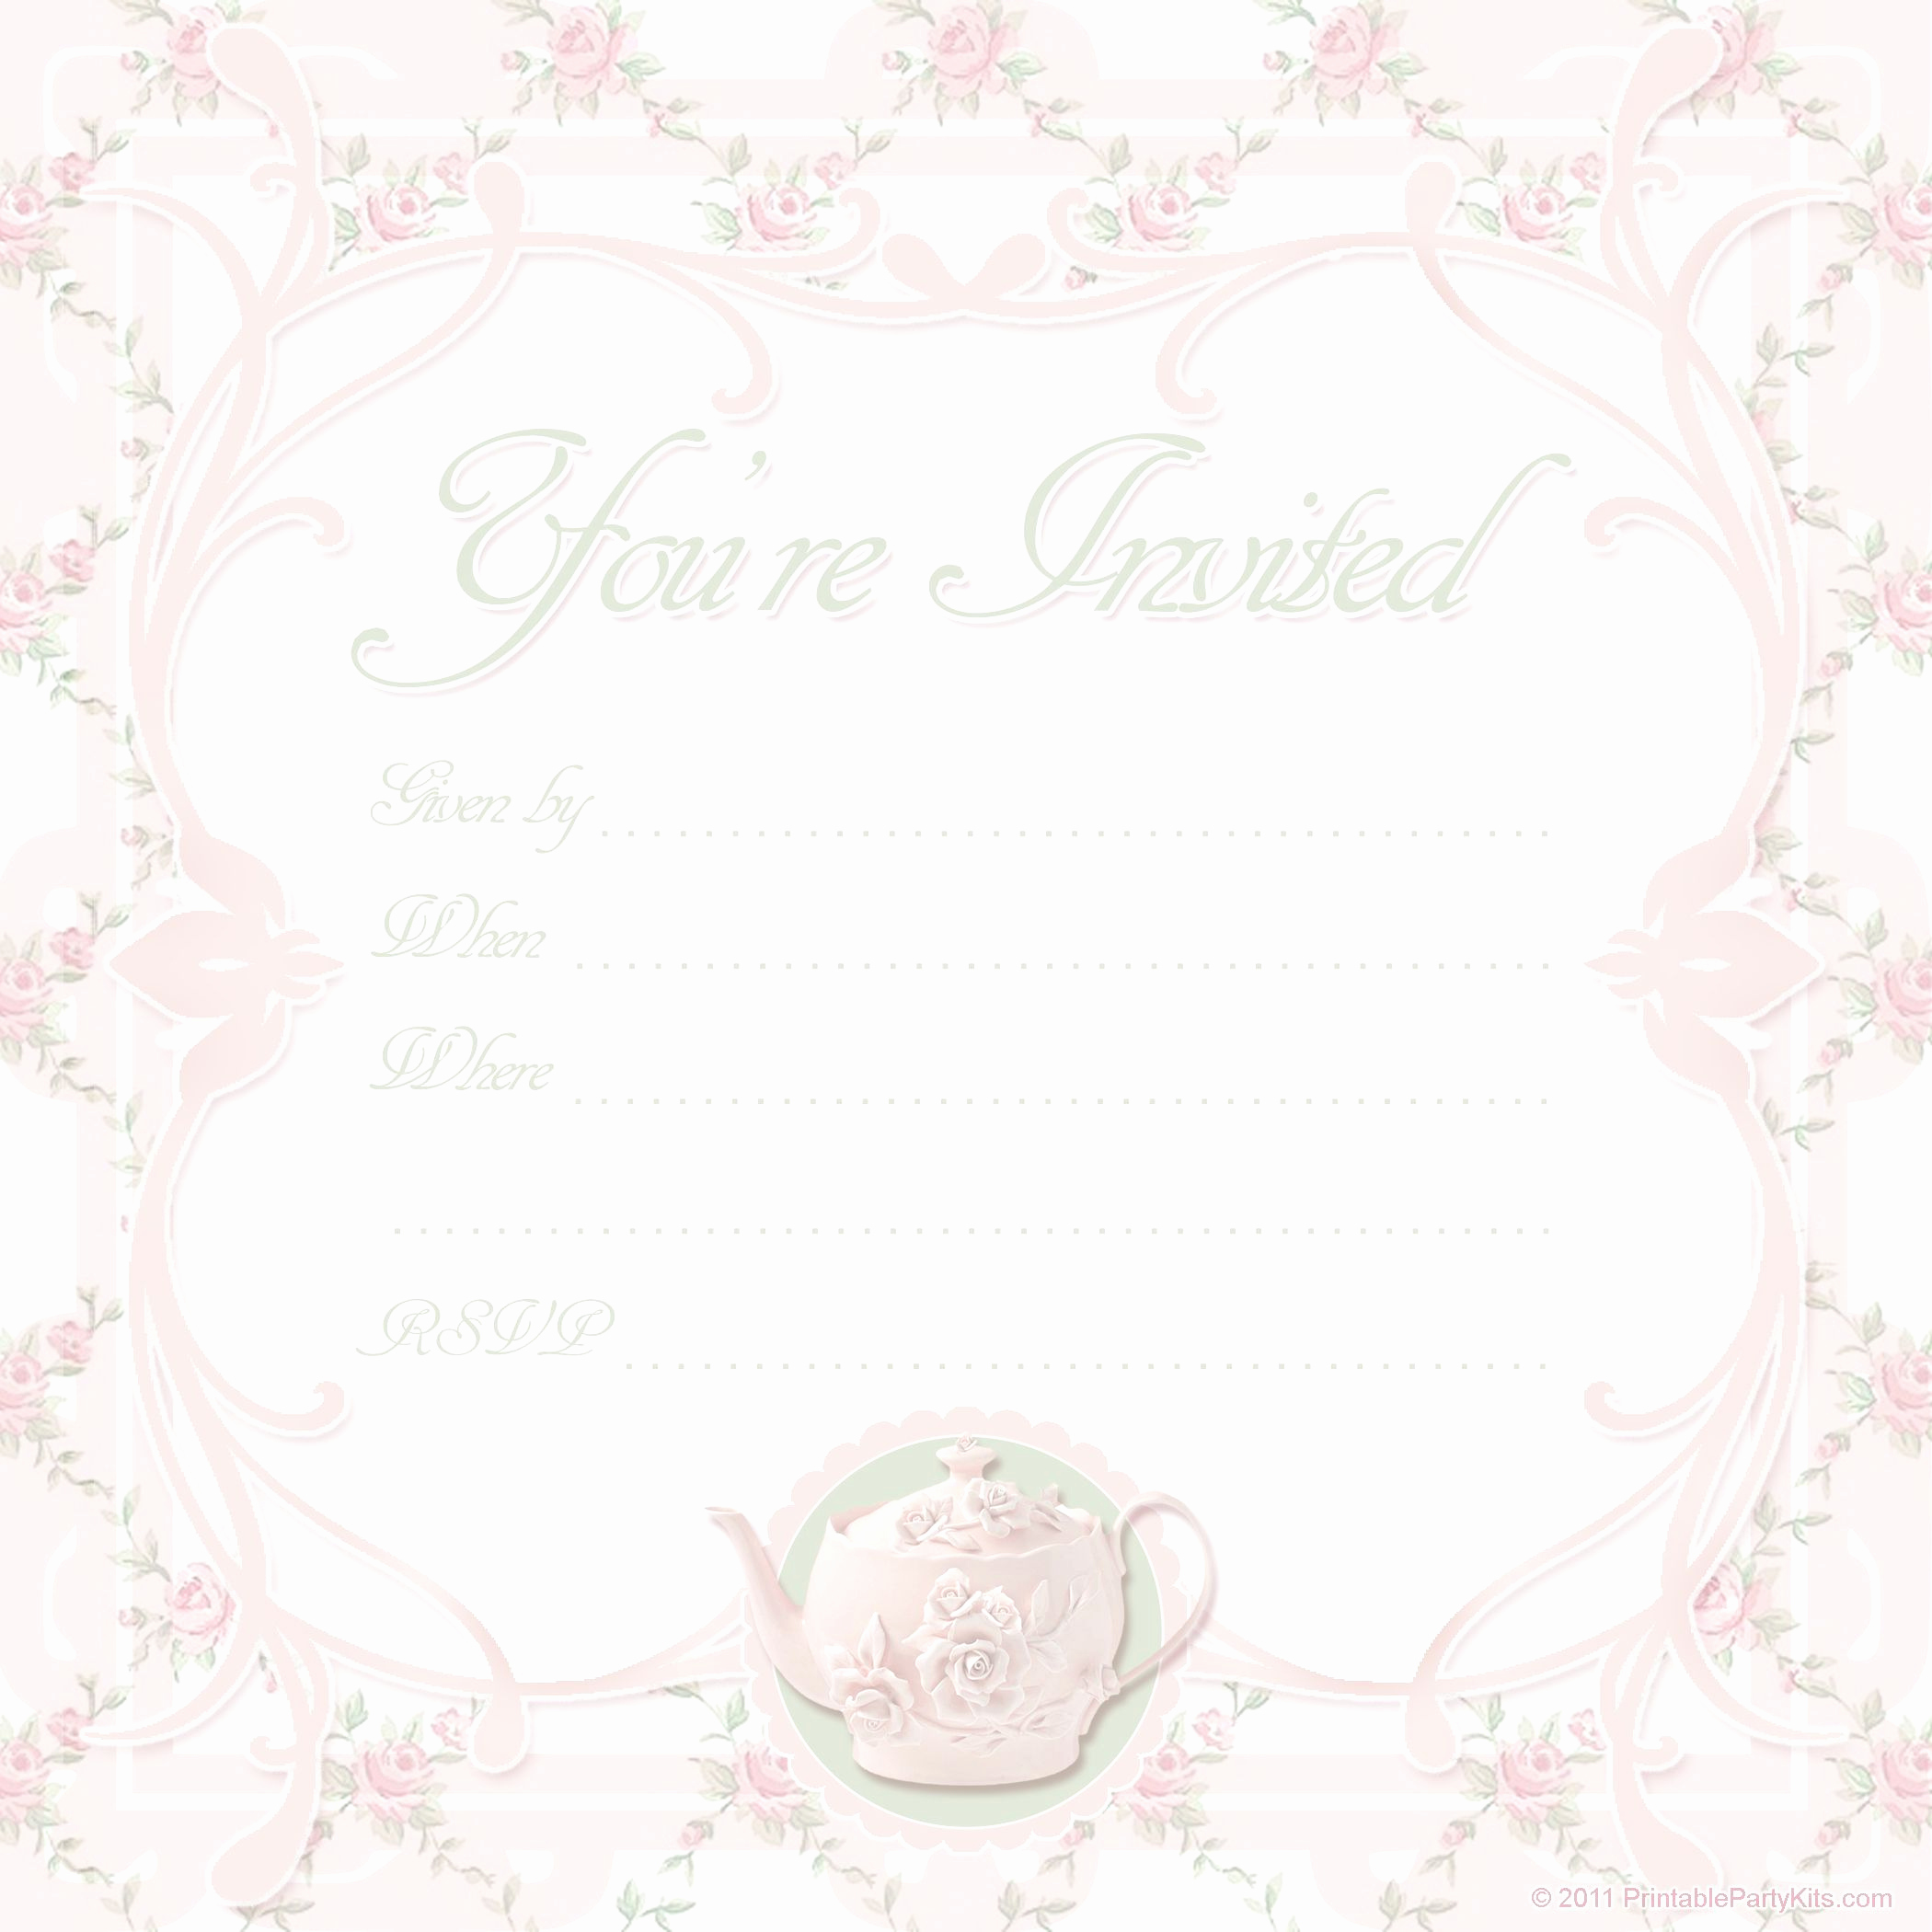 Free Templates for Invitations Luxury Card Template Blank Invitation Templates Free for Word